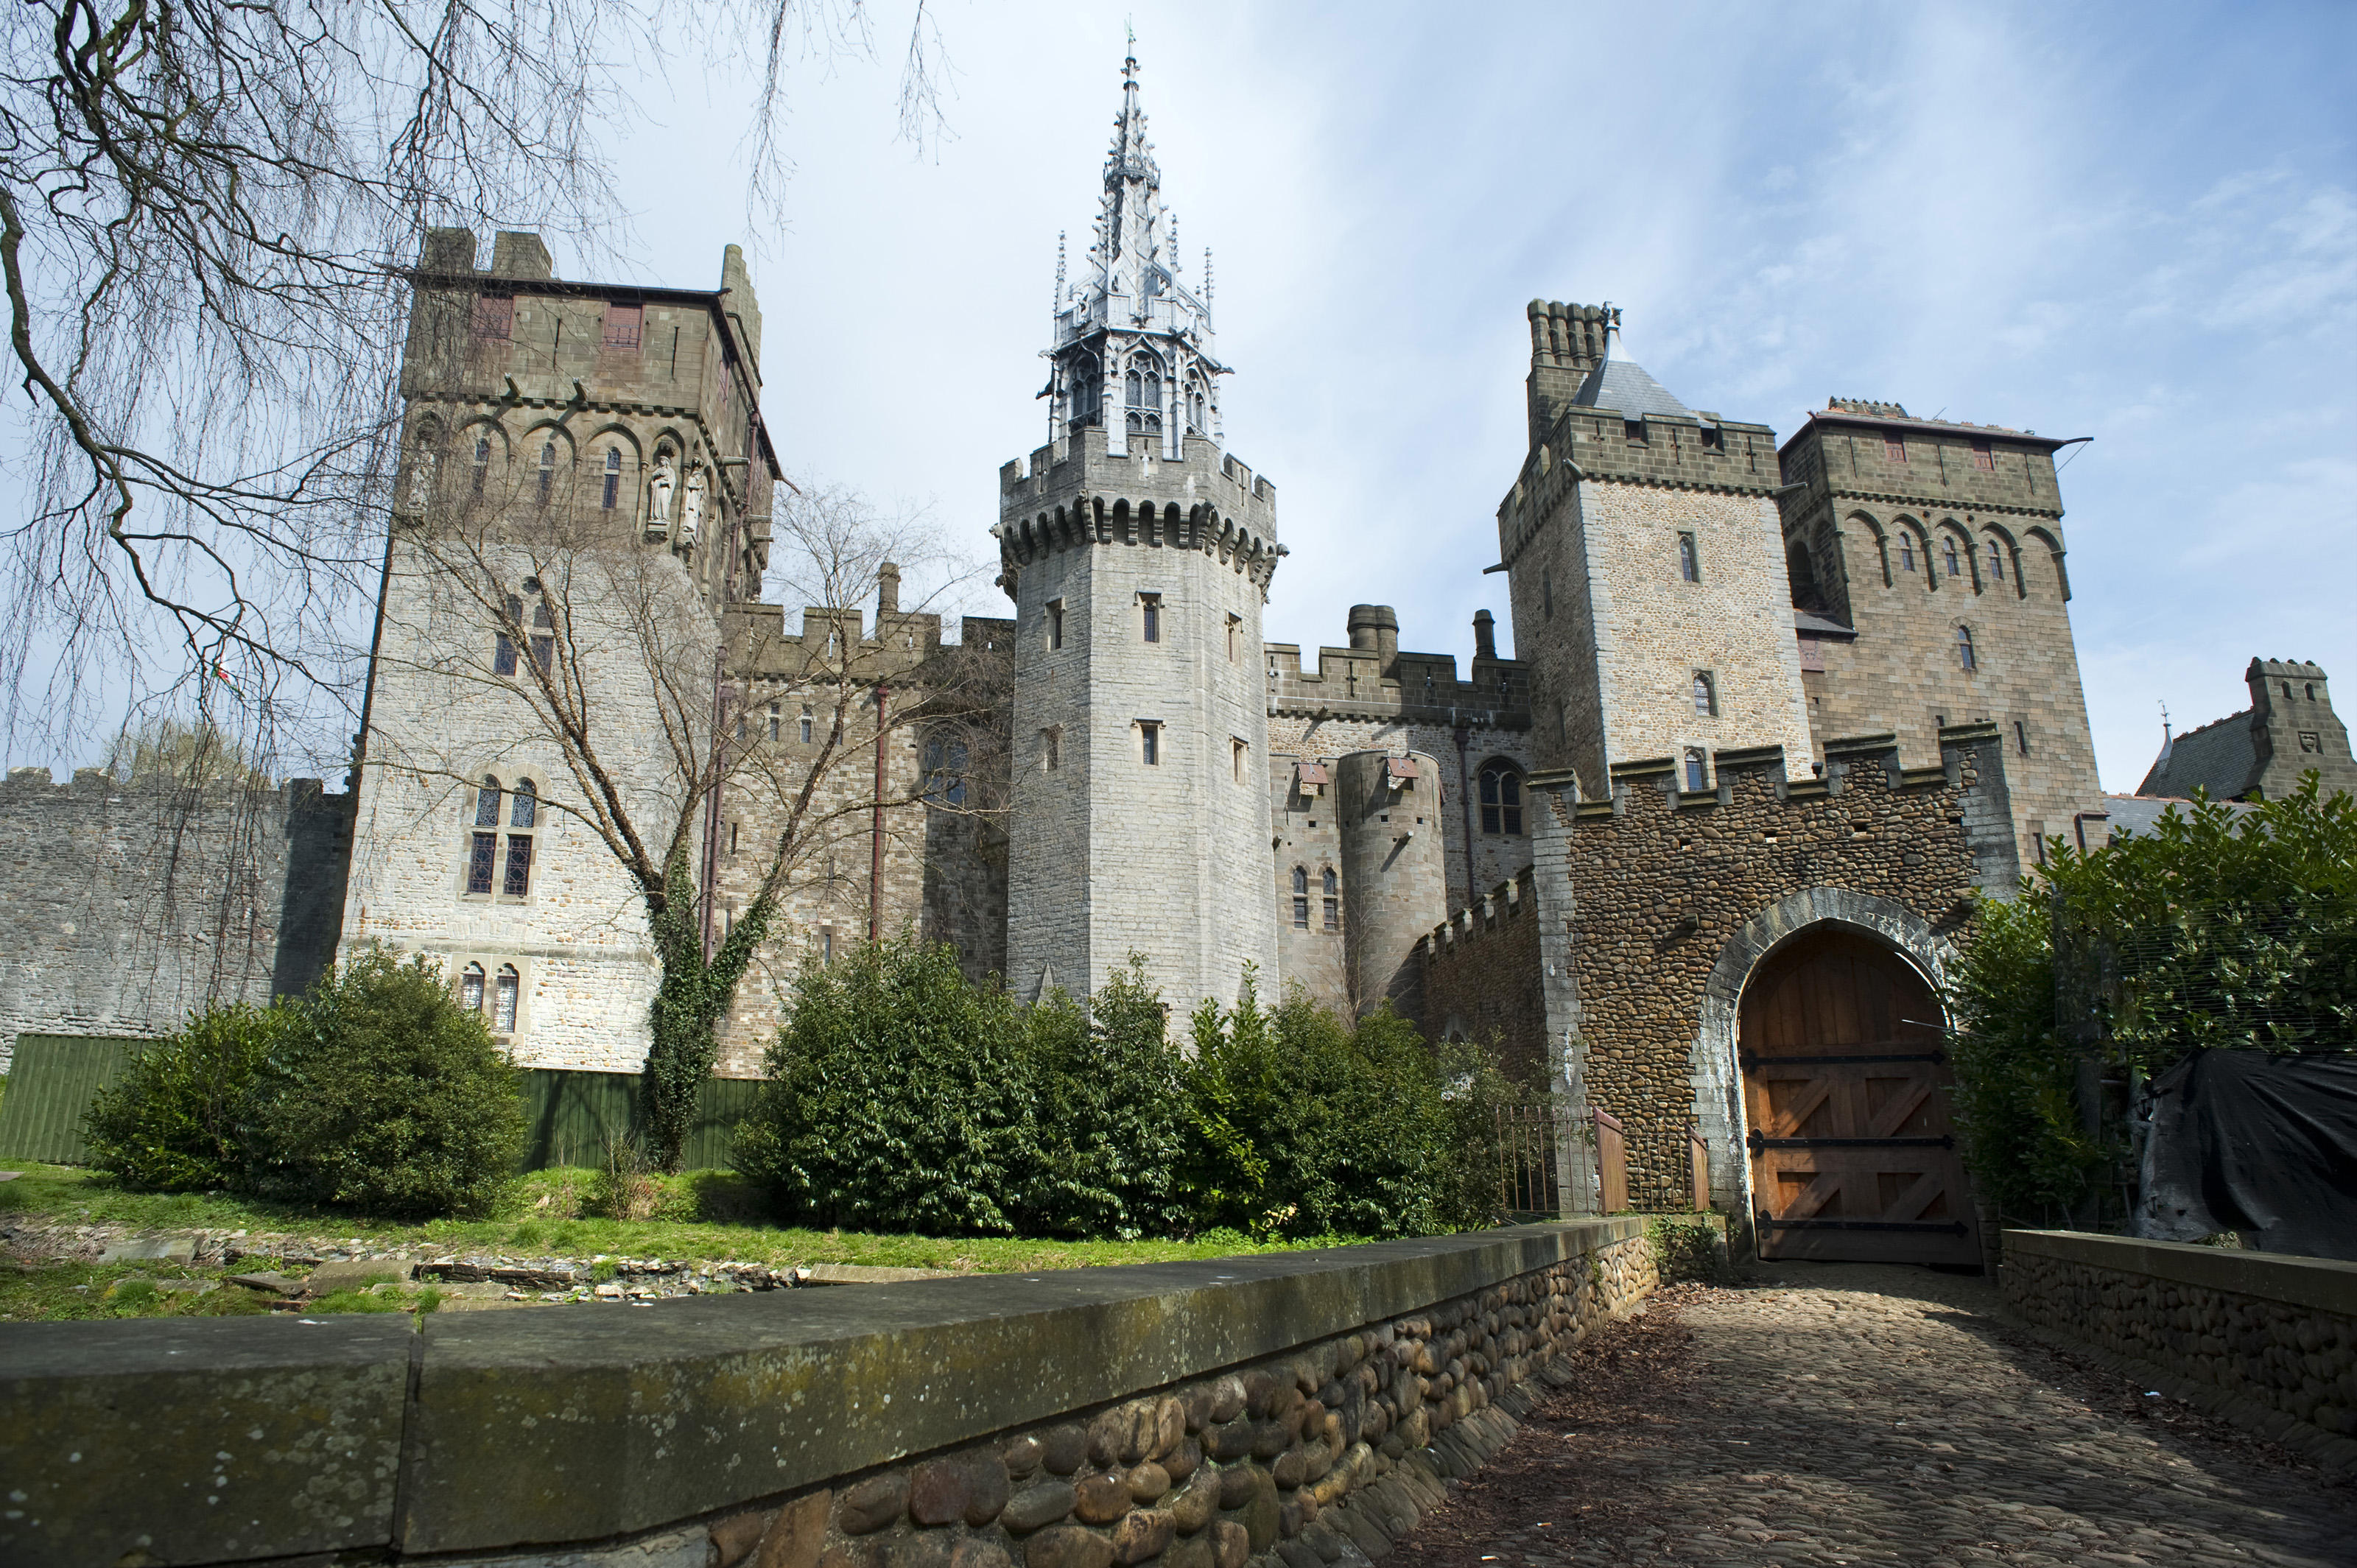 Cardiff Castle Apartments Wallpaper - HD Wallpapers